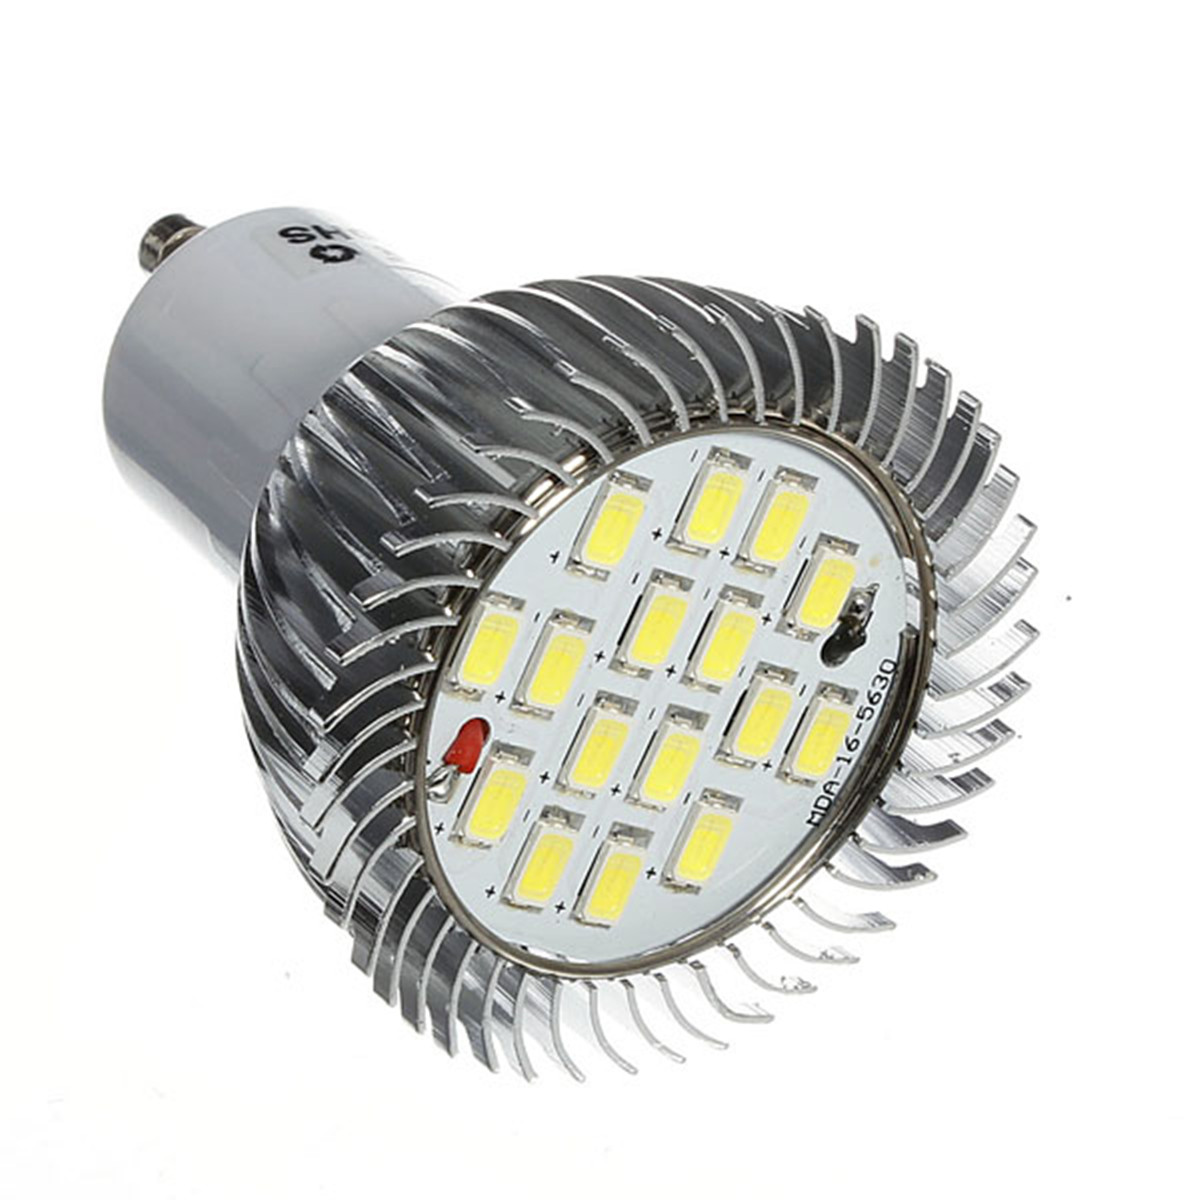 1x 10x GU10 7W 640LM 16 LED 5630 SMD Energy Saving Spotlight Bulb Home Lamp Pure White Chandelier Lighting Fixture AC85-265V